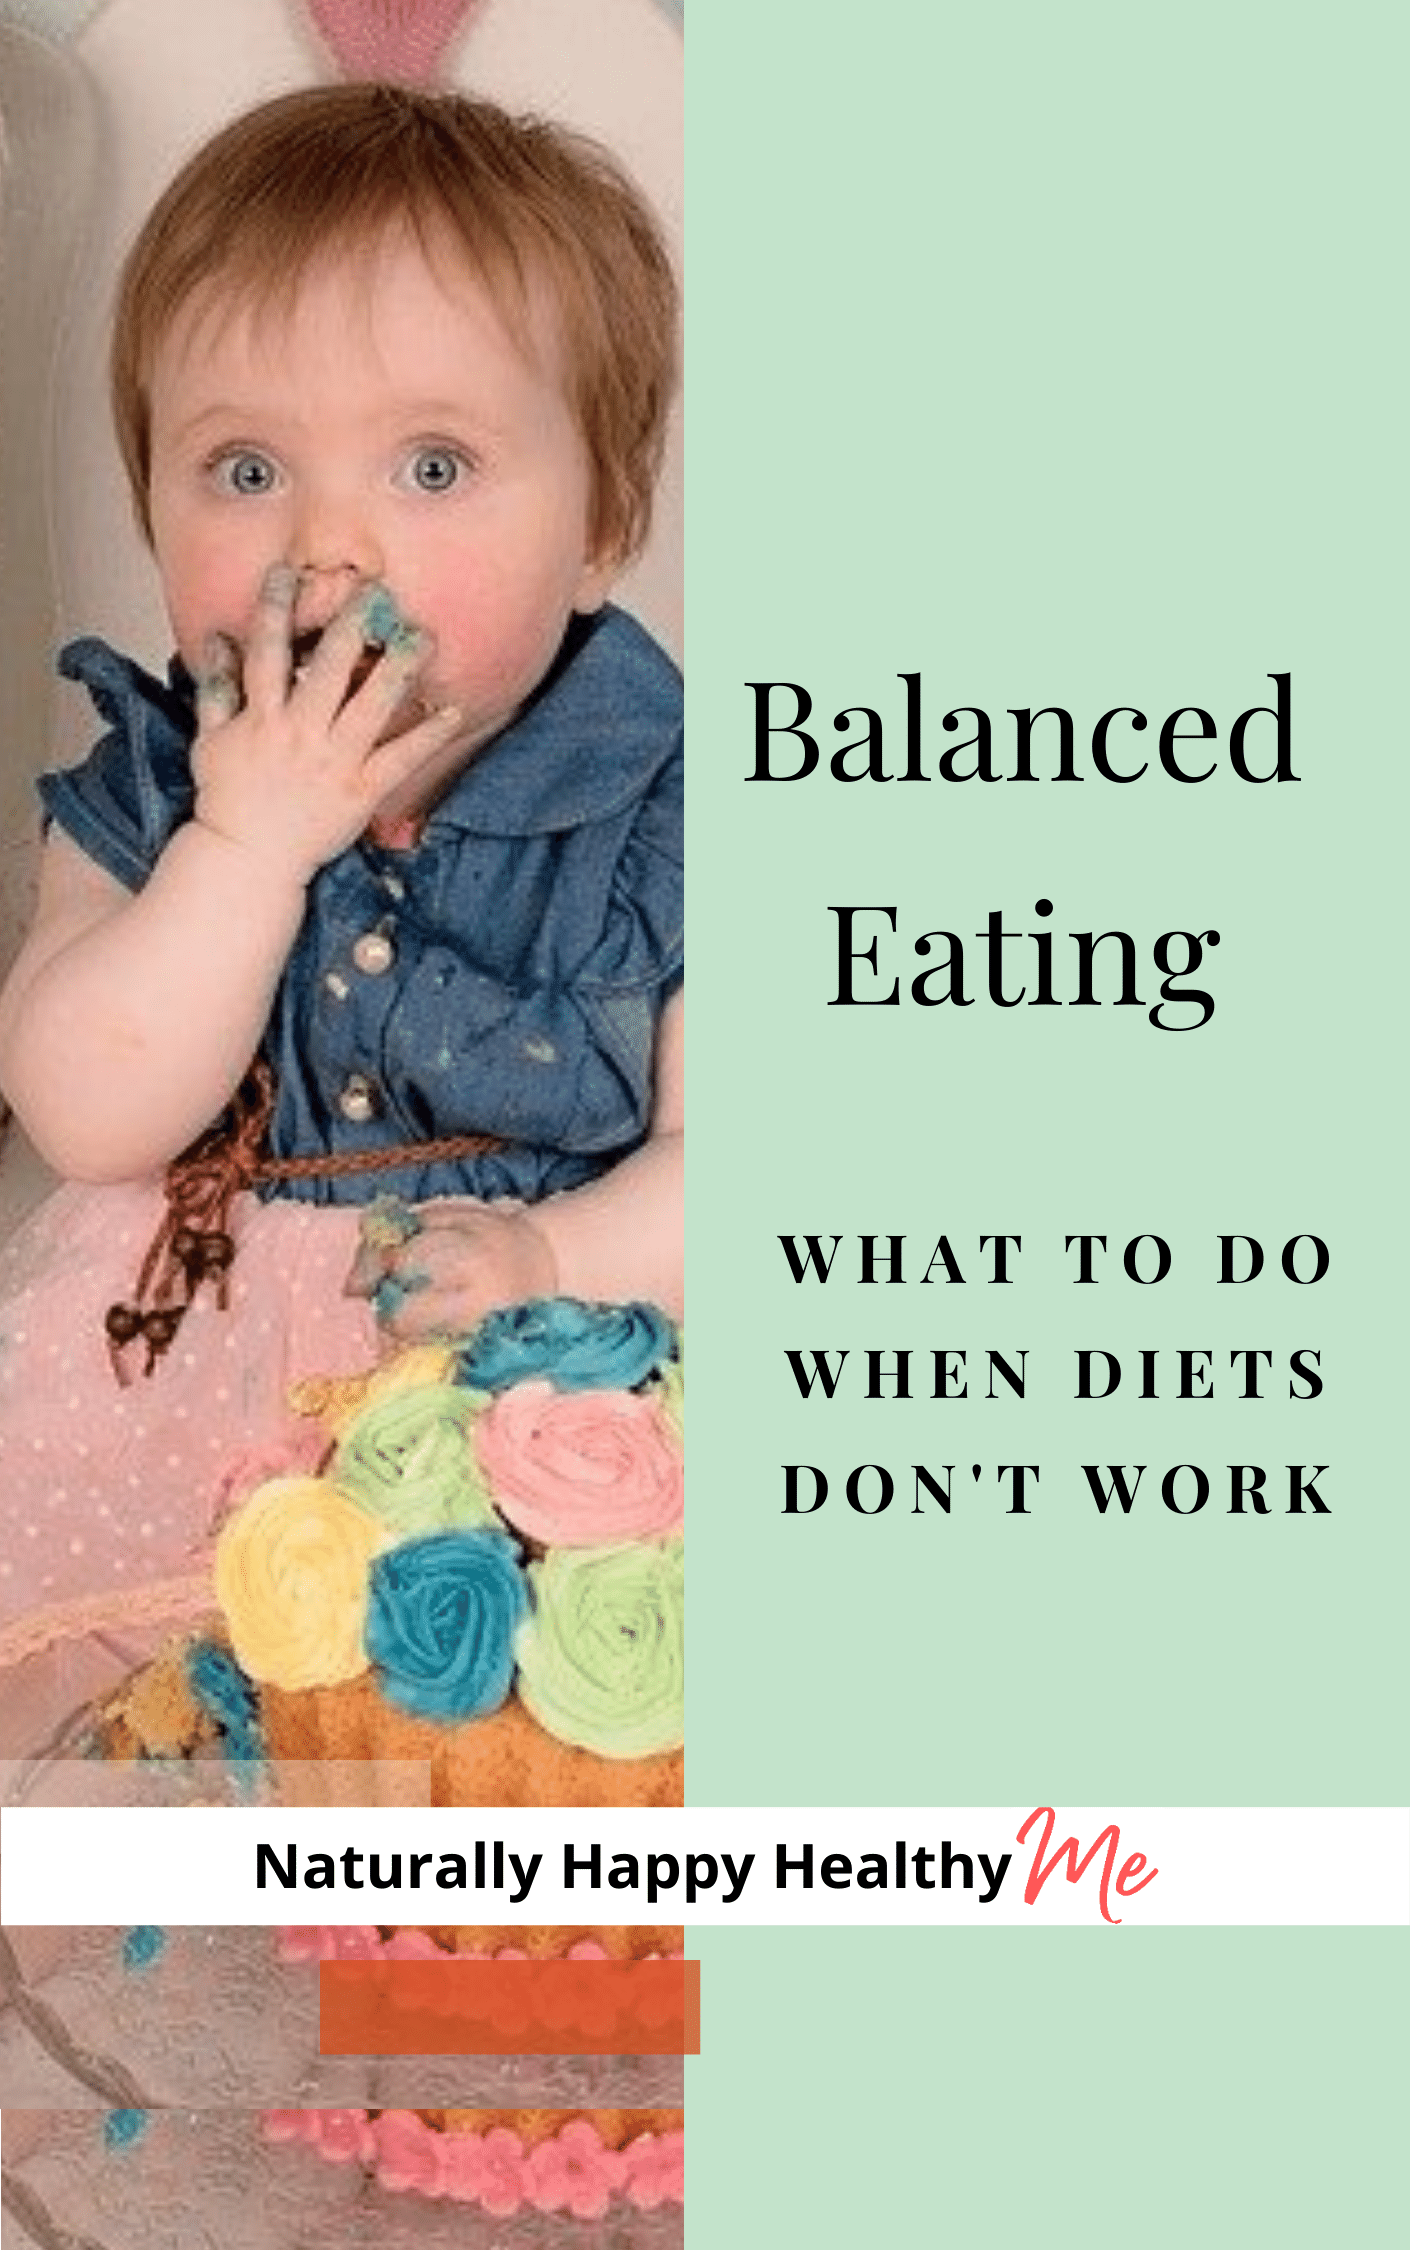 Balanced Eating: What to do when diets don't work